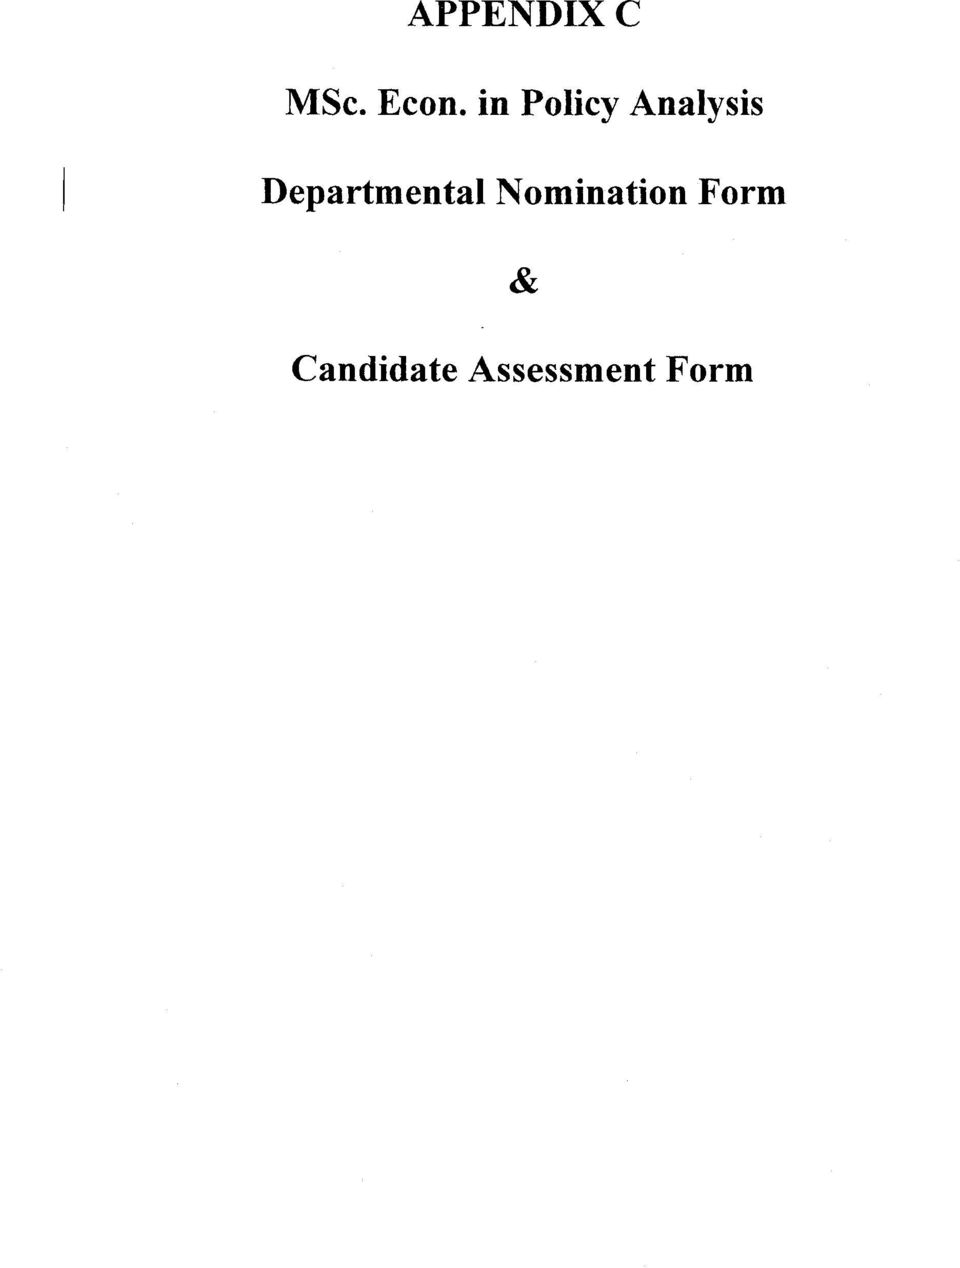 Departmental Nomination